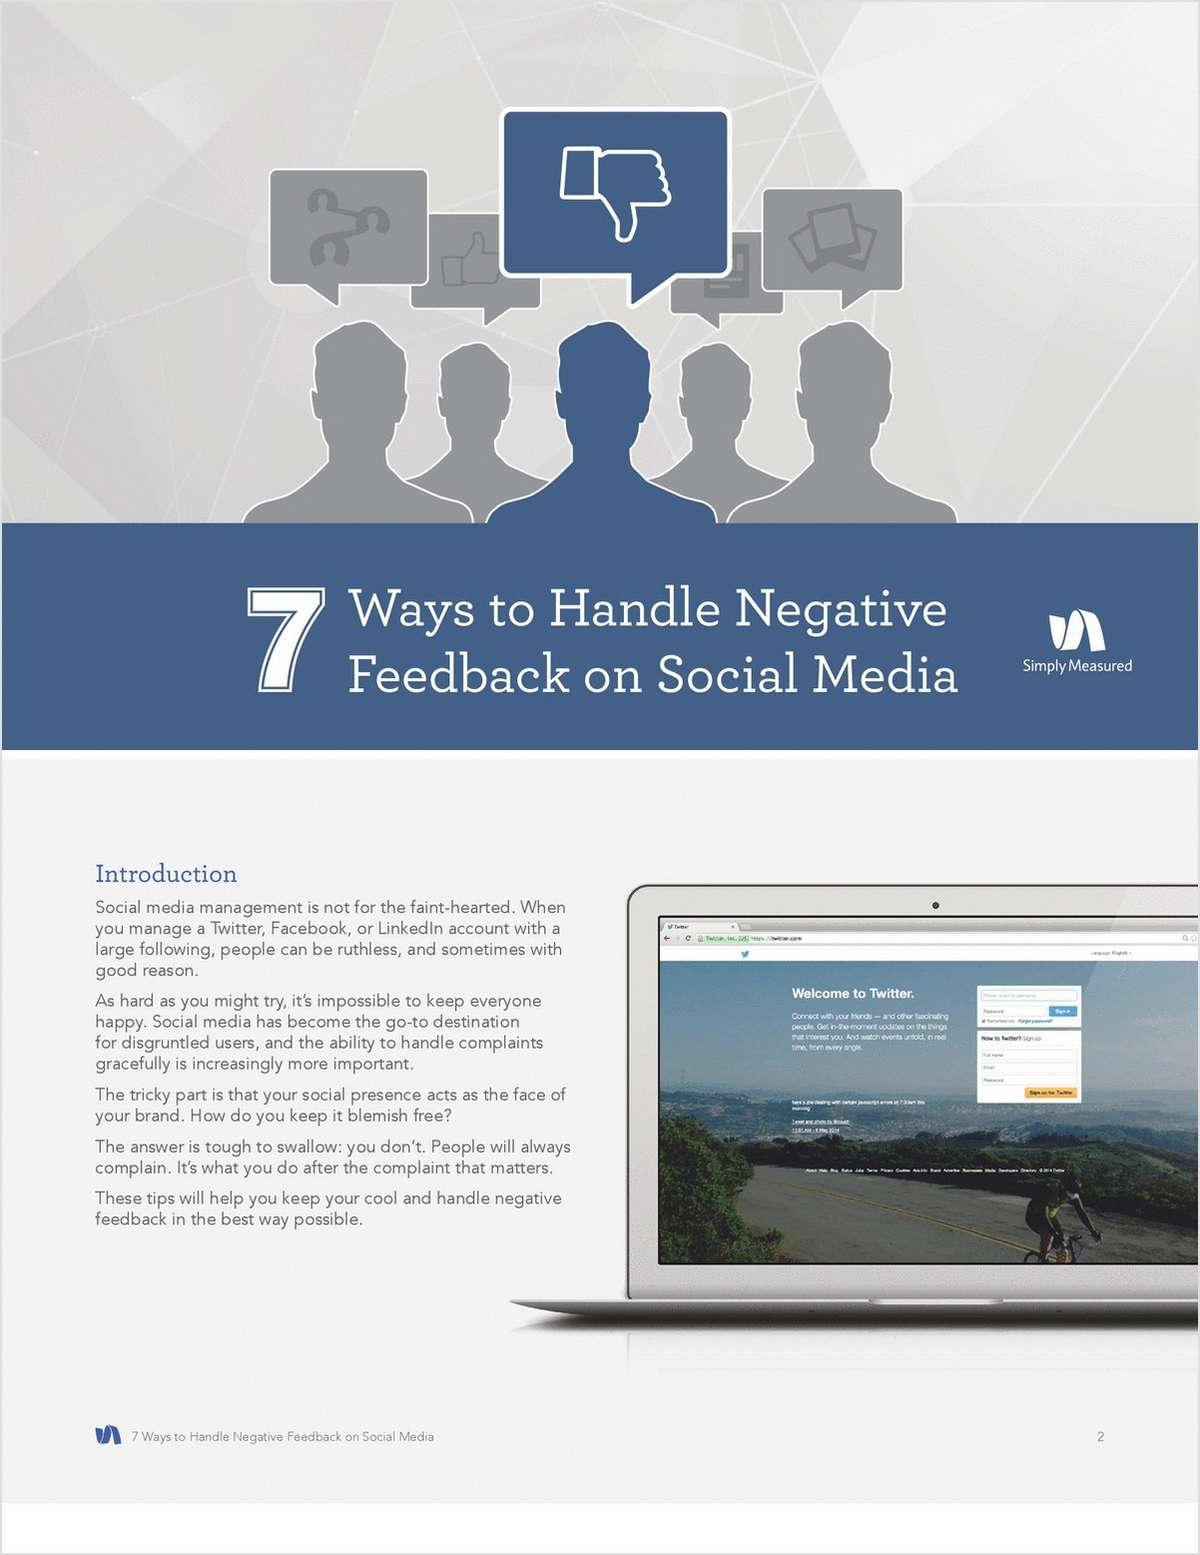 7 Ways to Handle Negative Feedback on Instagram